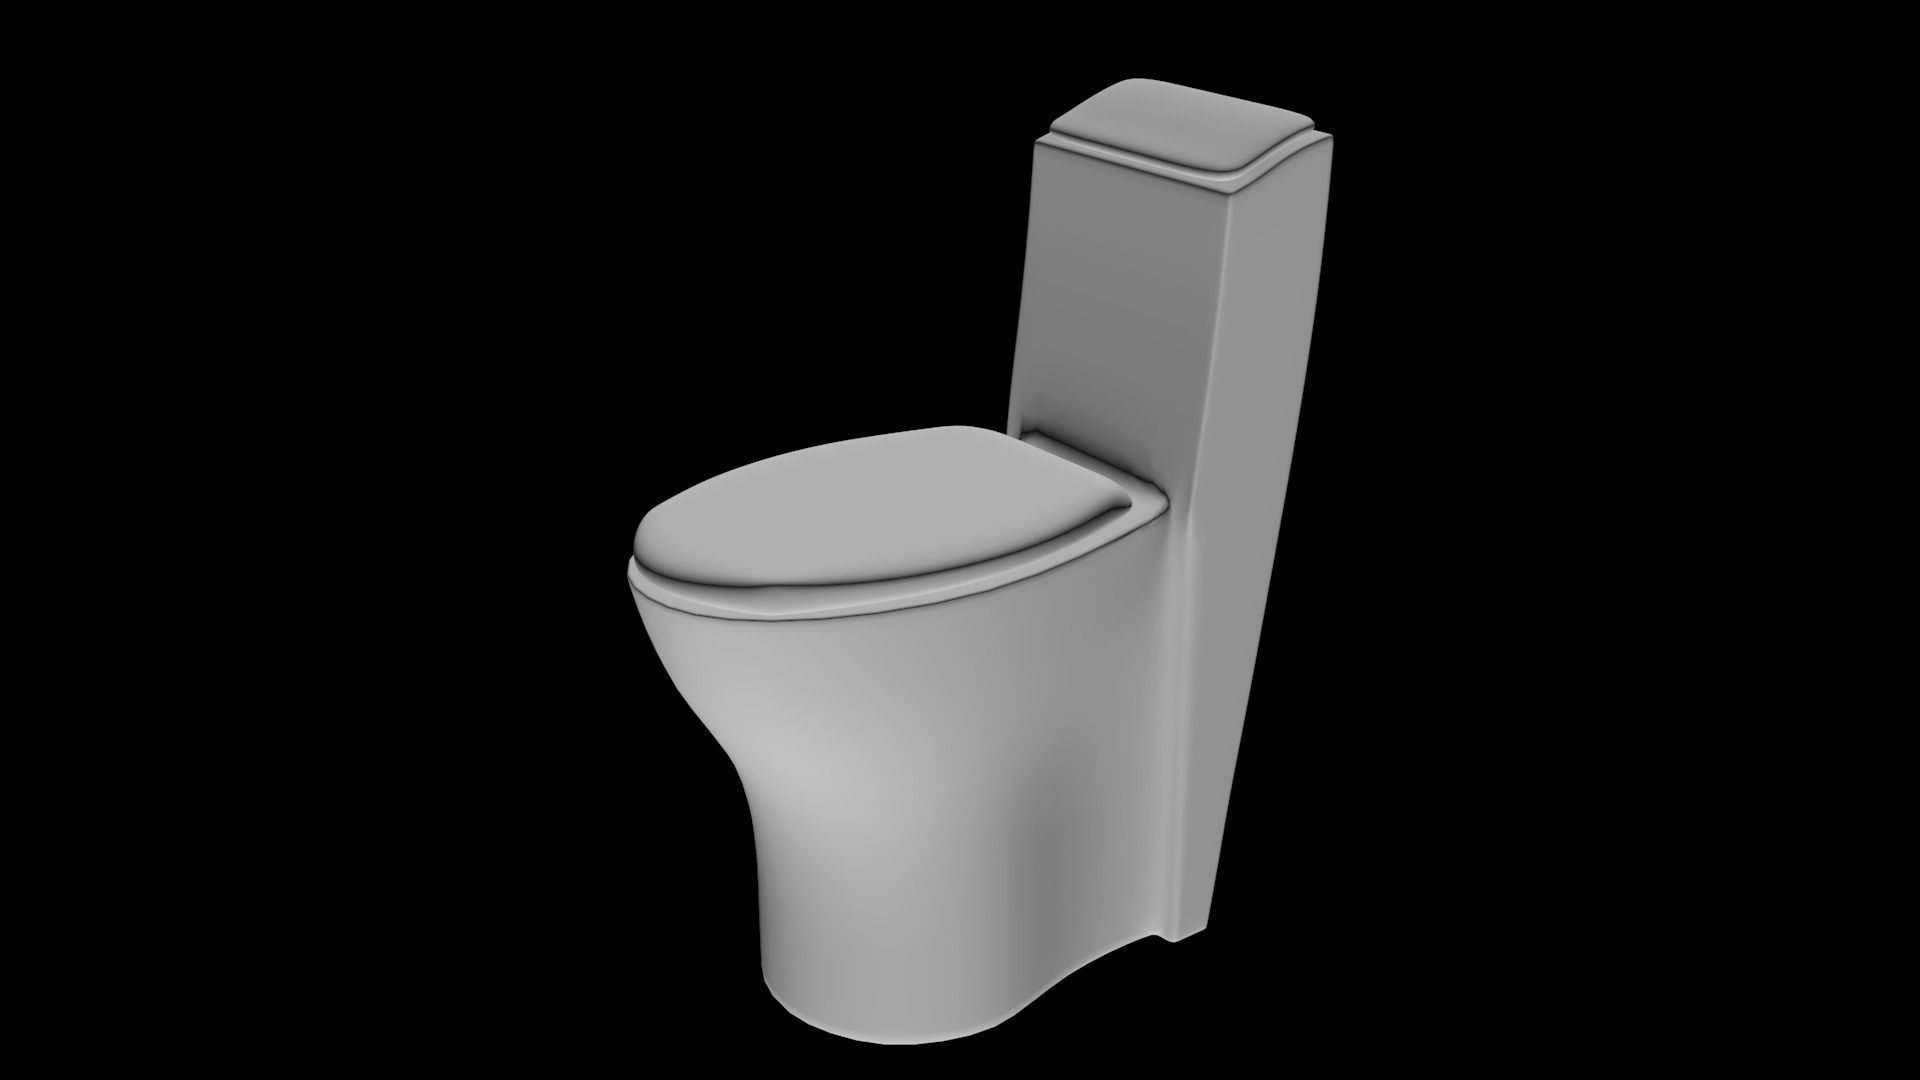 Toilet 3d model low poly cgtrader